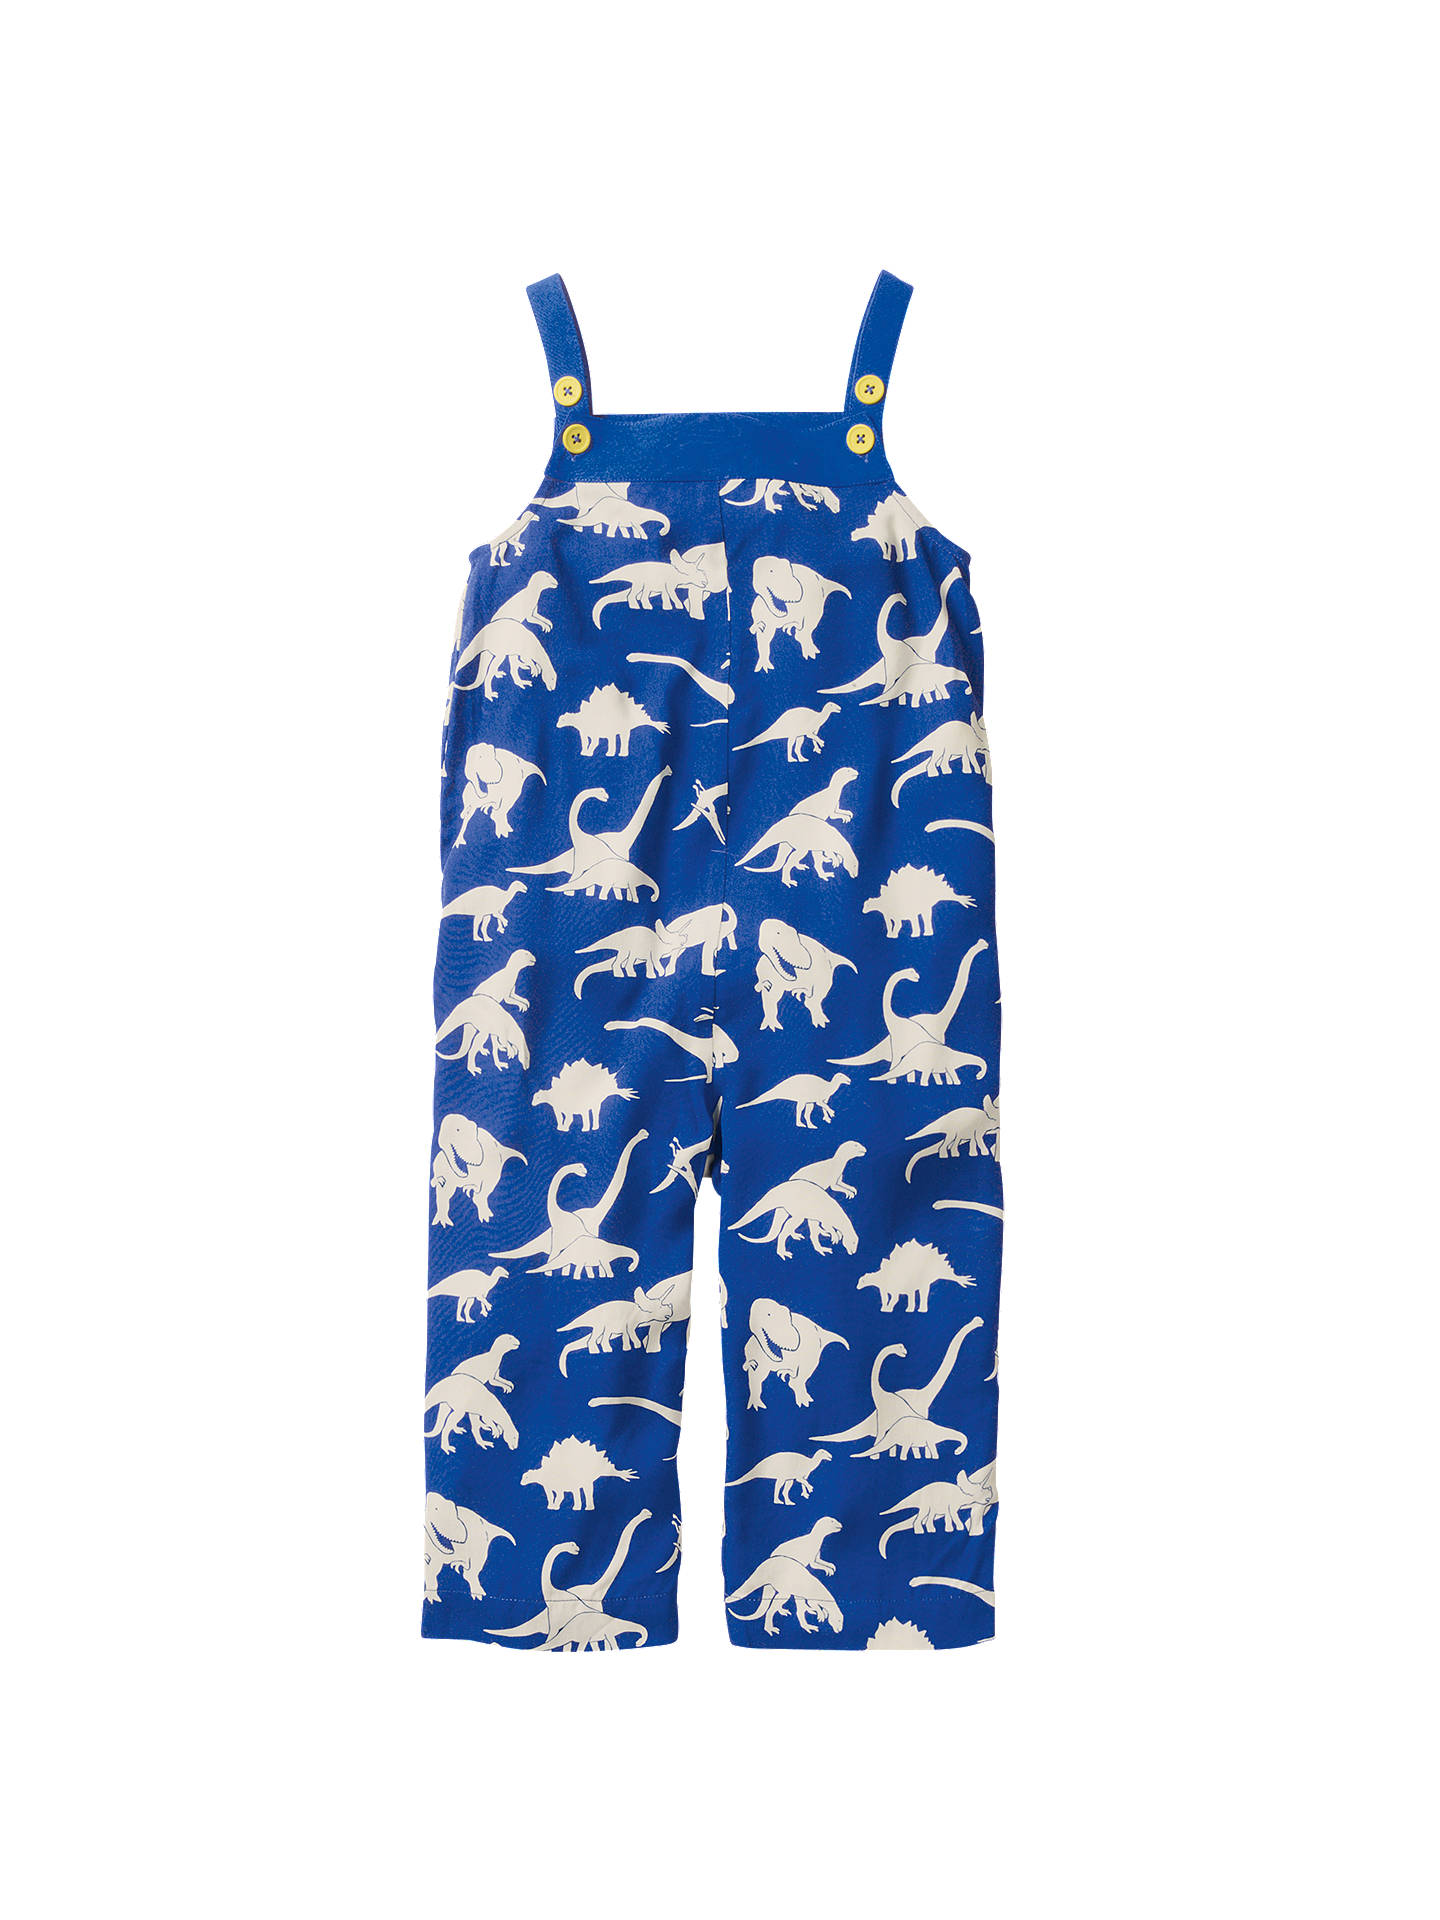 91d41931f3 Buy Mini Boden Culotte Dinosaur Playsuit